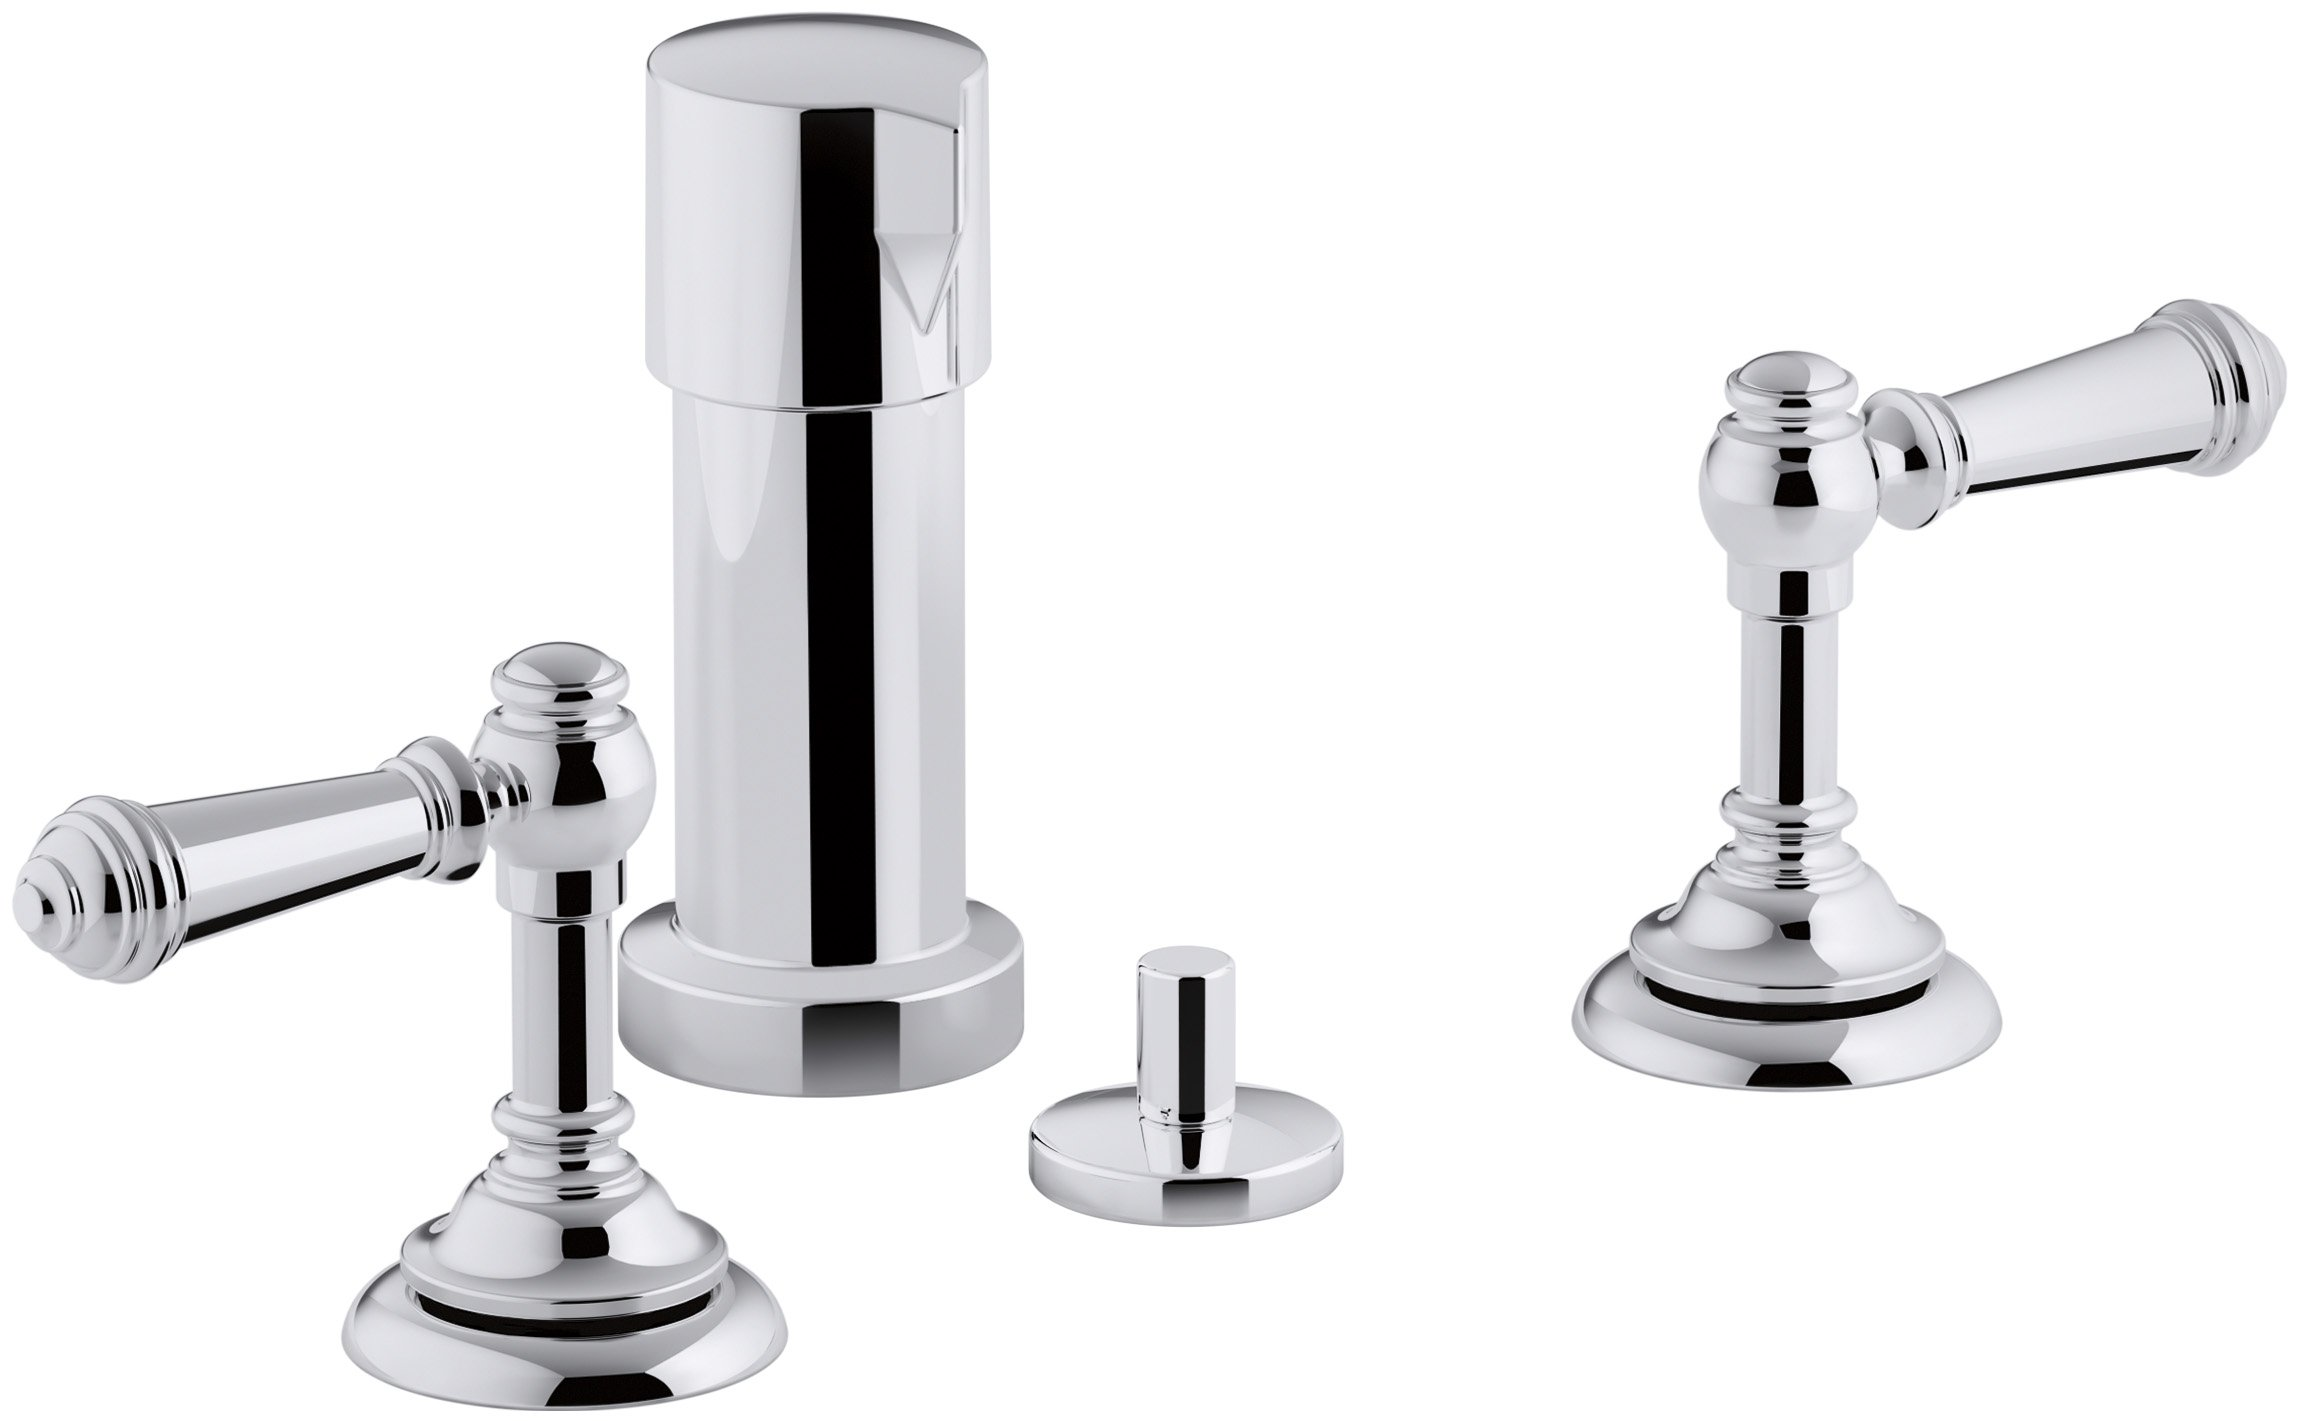 KOHLER K-72765-4-CP Artifacts Widespread bidet faucet with lever handles, Polished Chrome